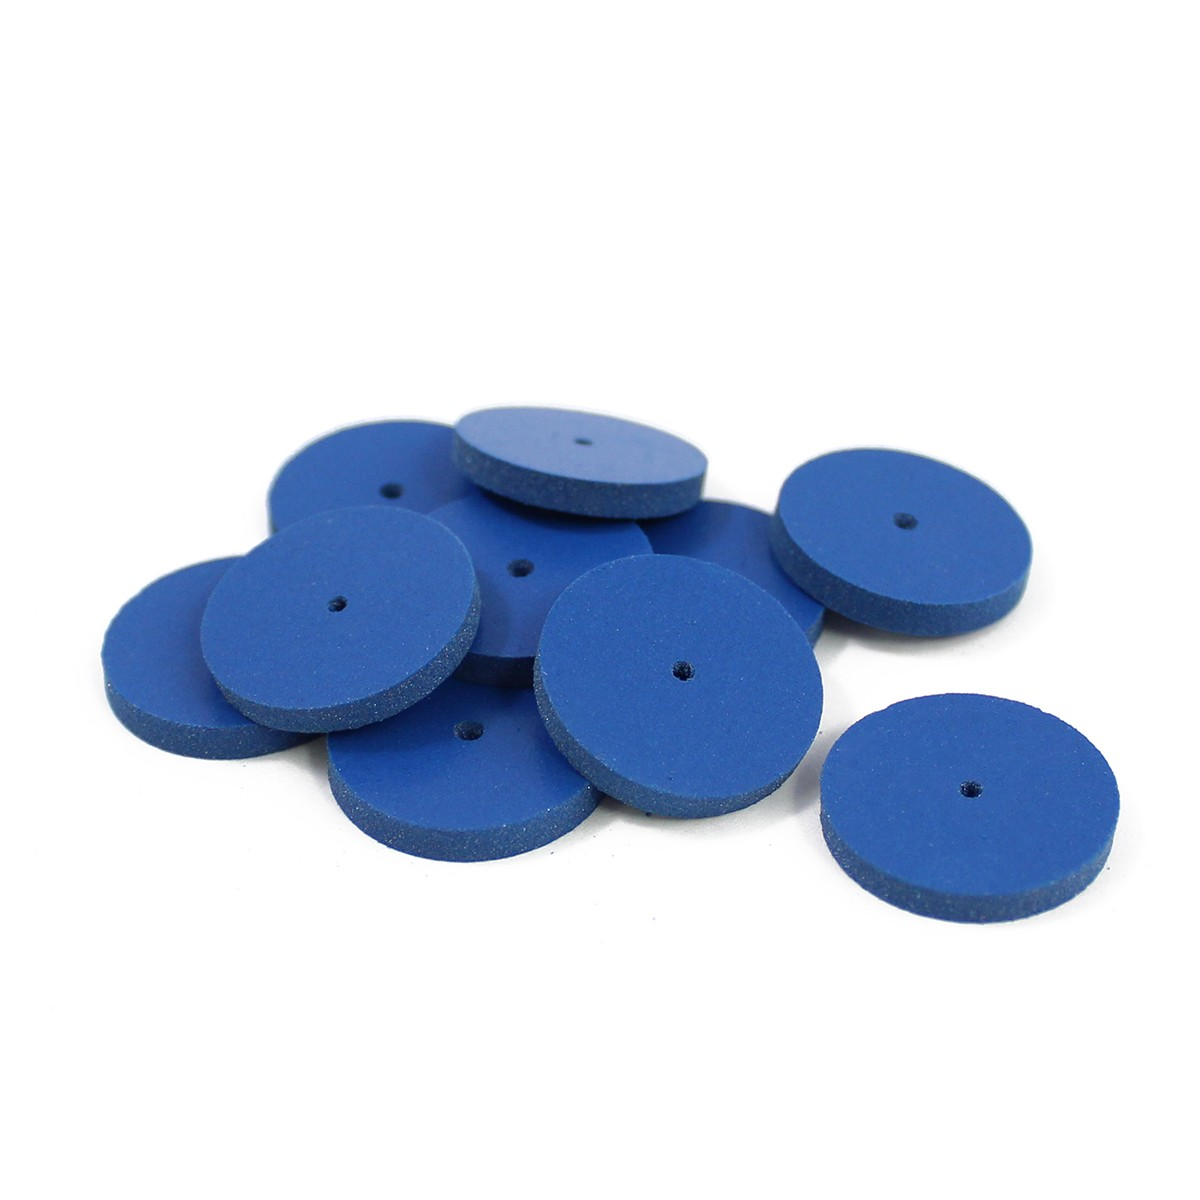 Eve® Blue Eve Miracle Wheels, Square Edge